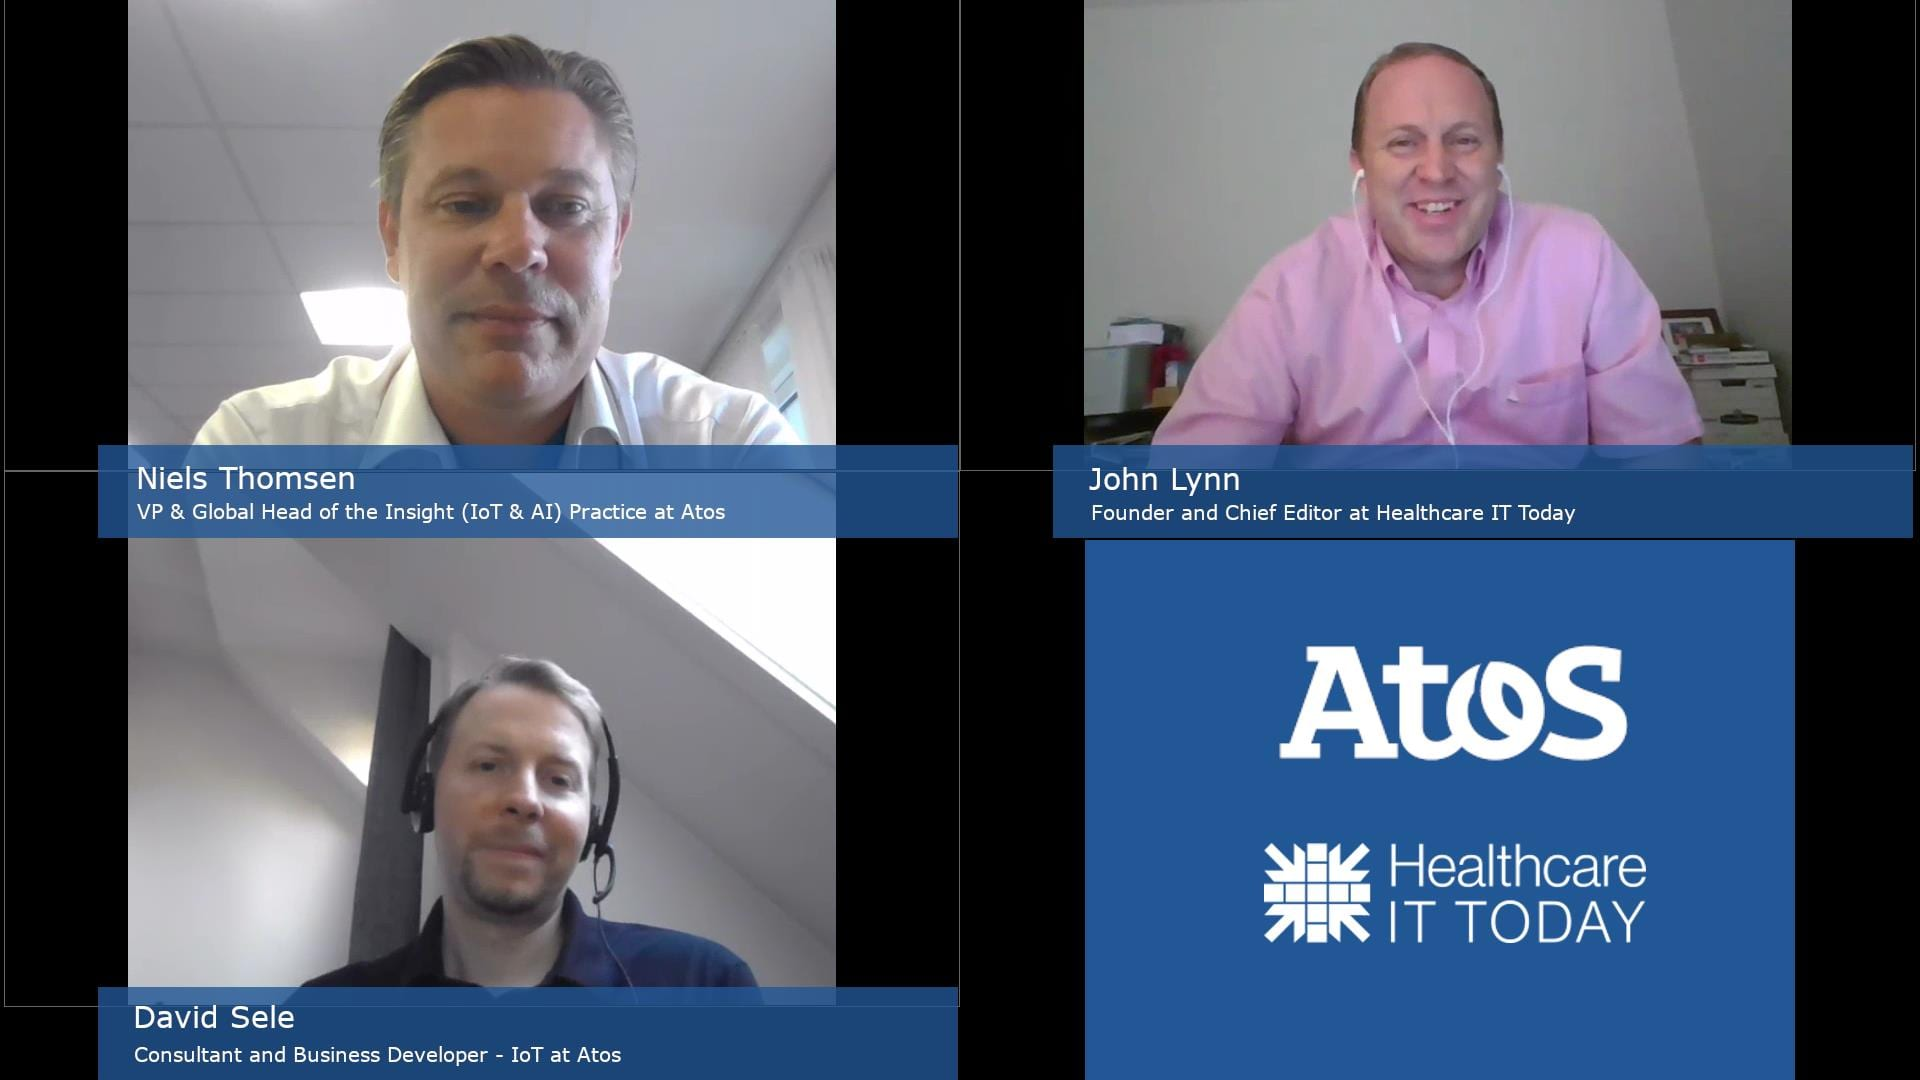 Digital Twins in Healthcare – Insights from Atos Experts